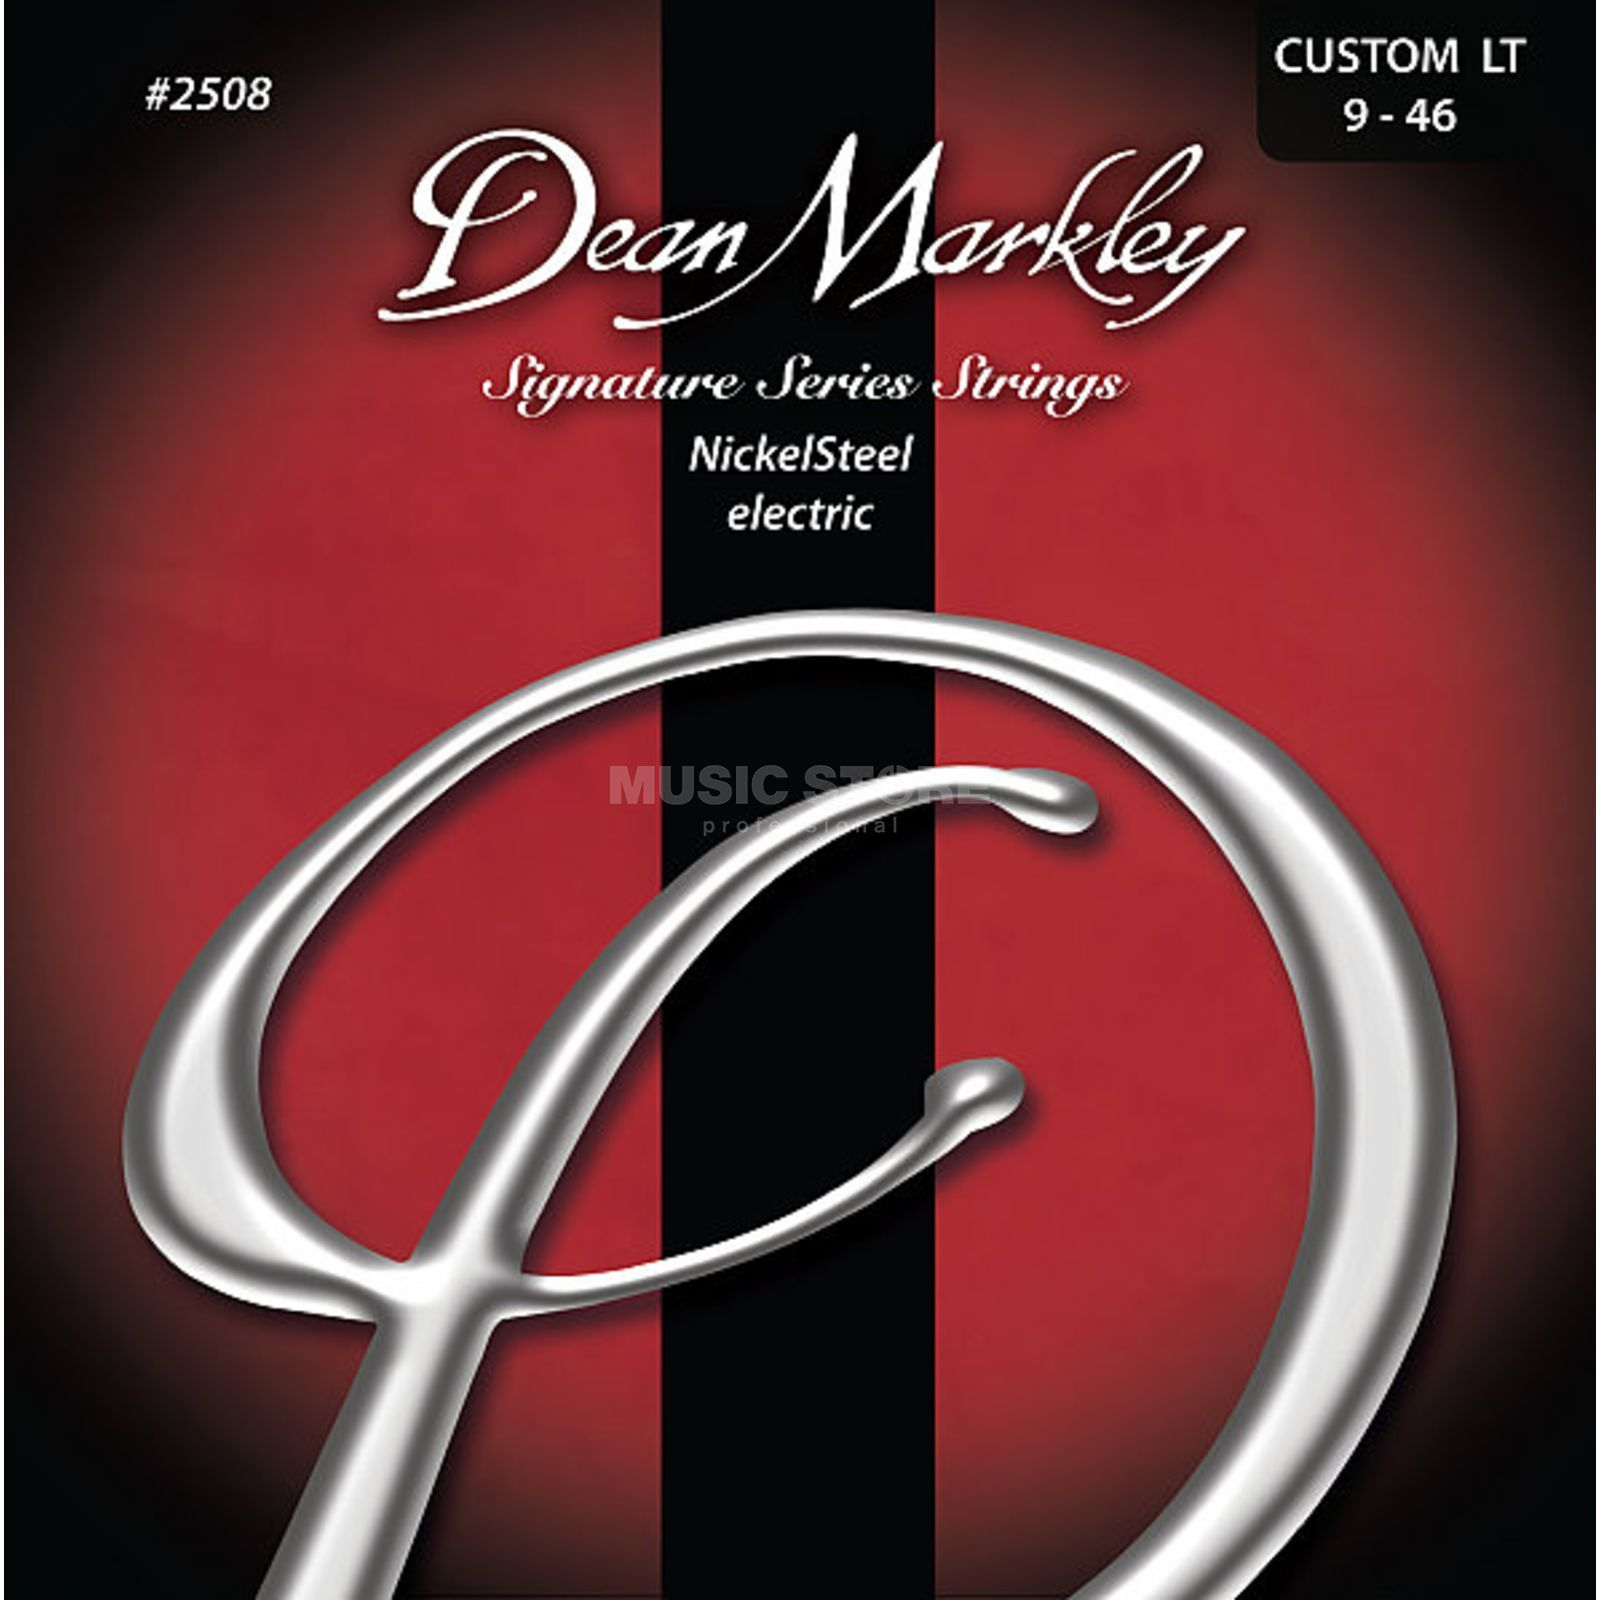 Dean Markley E-Guit. Strings 09-46 2508B CL Nickel Steel Immagine prodotto